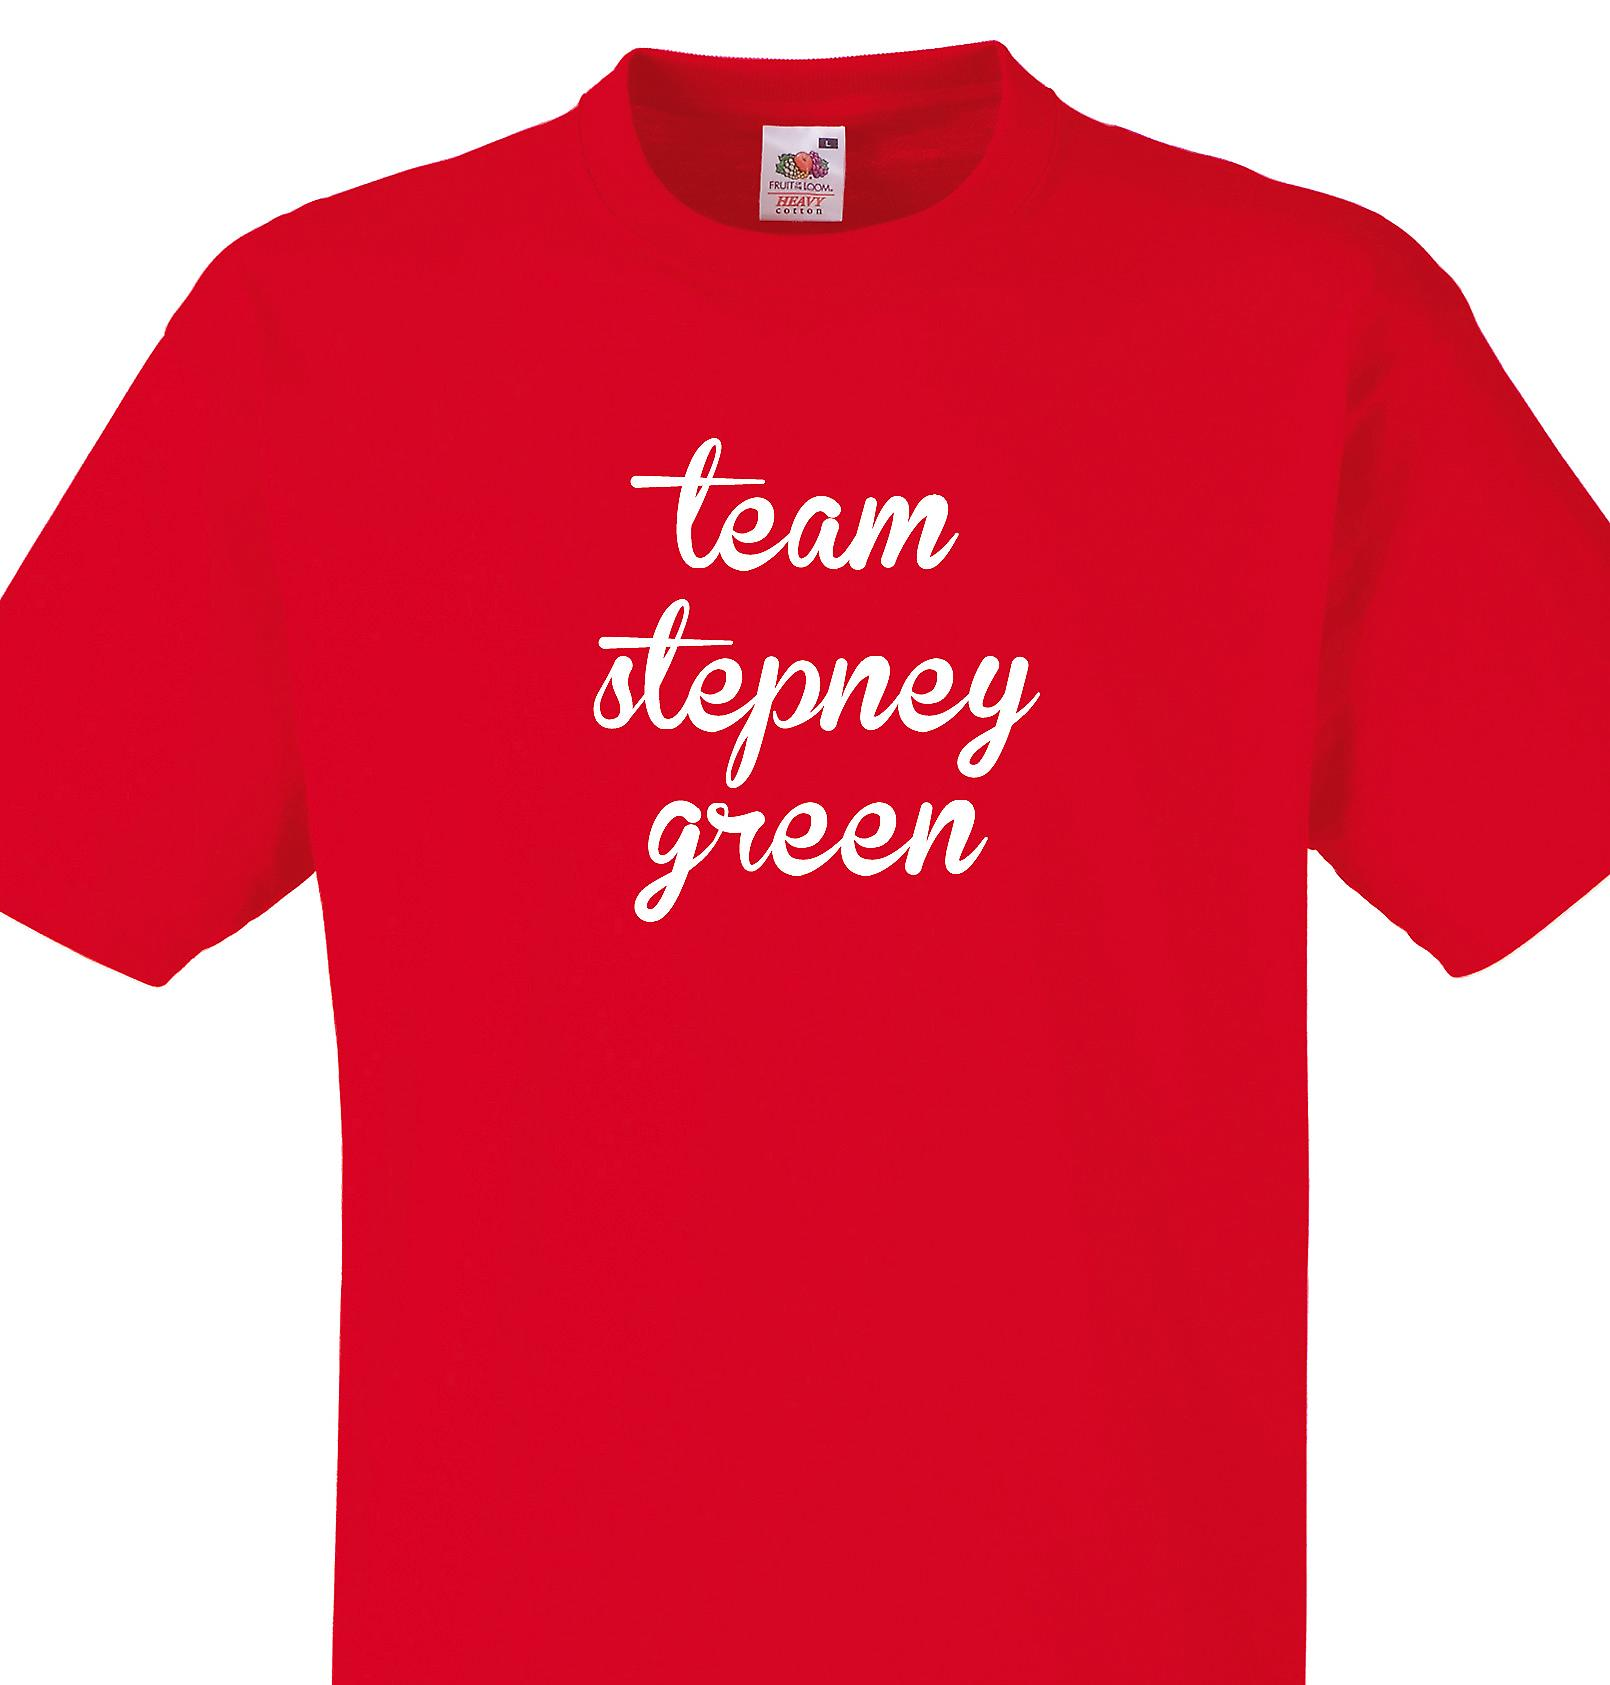 Team Stepney green Red T shirt